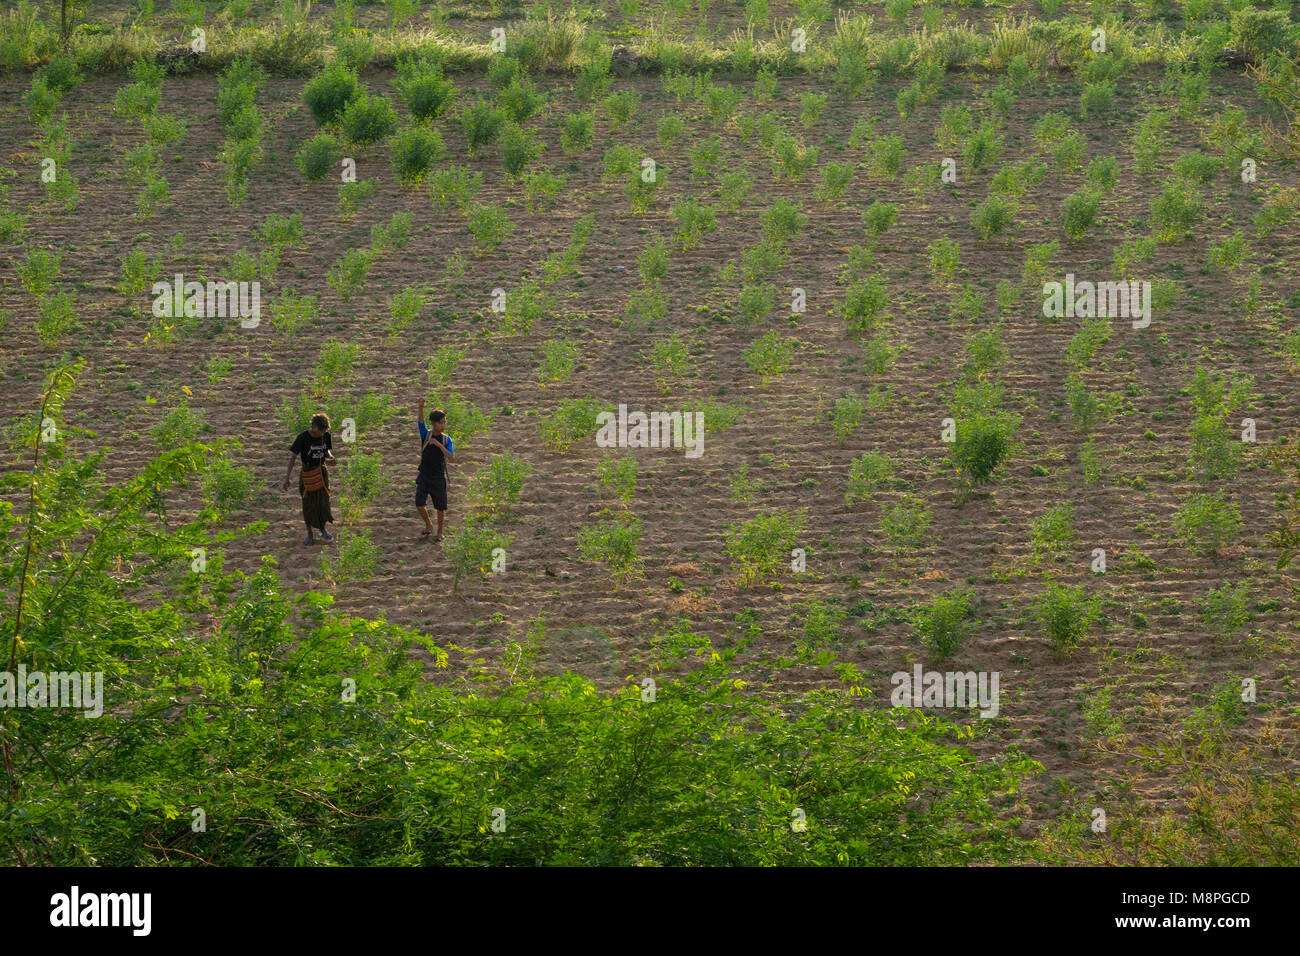 A couple of Burmese boys, teenagers, youths walking on the soil of a ploughed field, with shrubs growing, in a rural - Stock Image